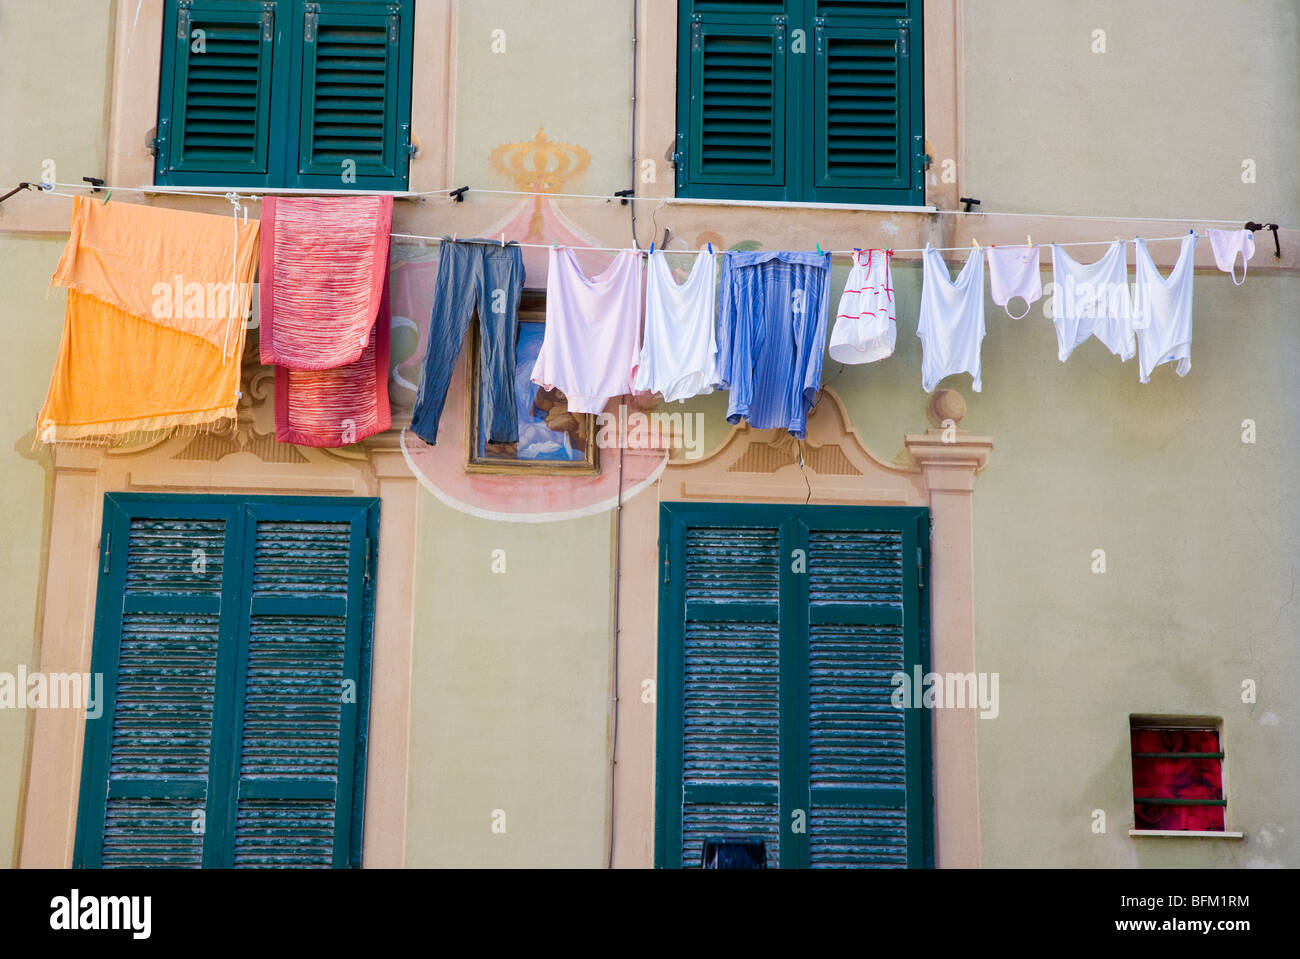 Washing line with drying clothes and house Camogli, Liguria, Italy - Stock Image